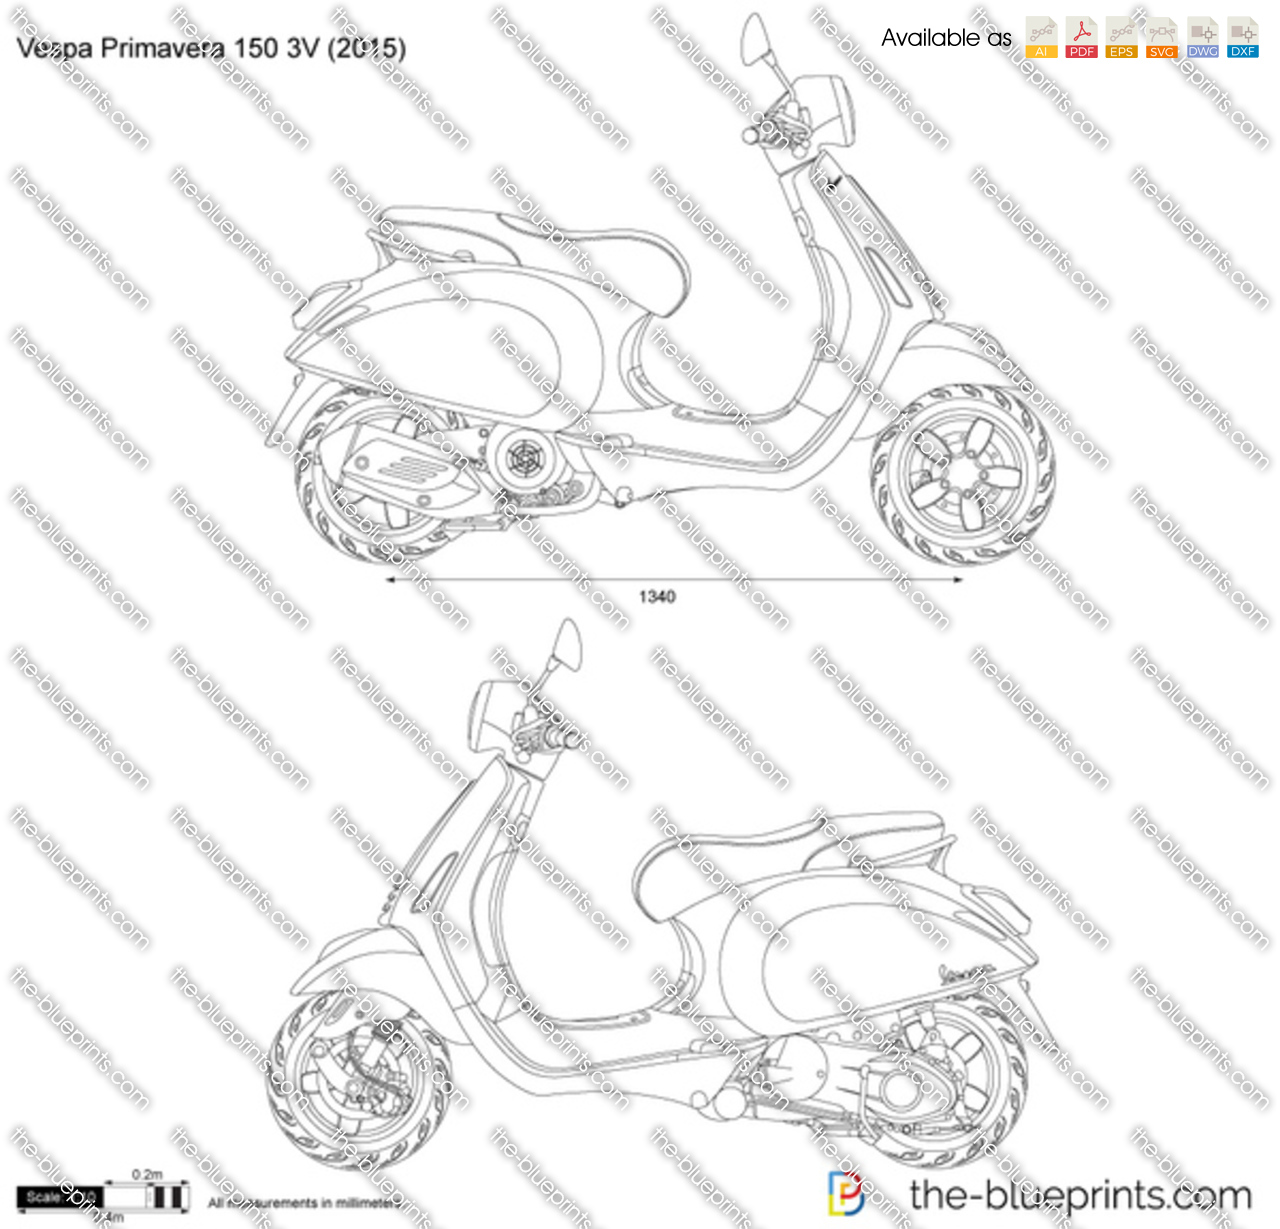 vespa primavera 150 3v vector drawing